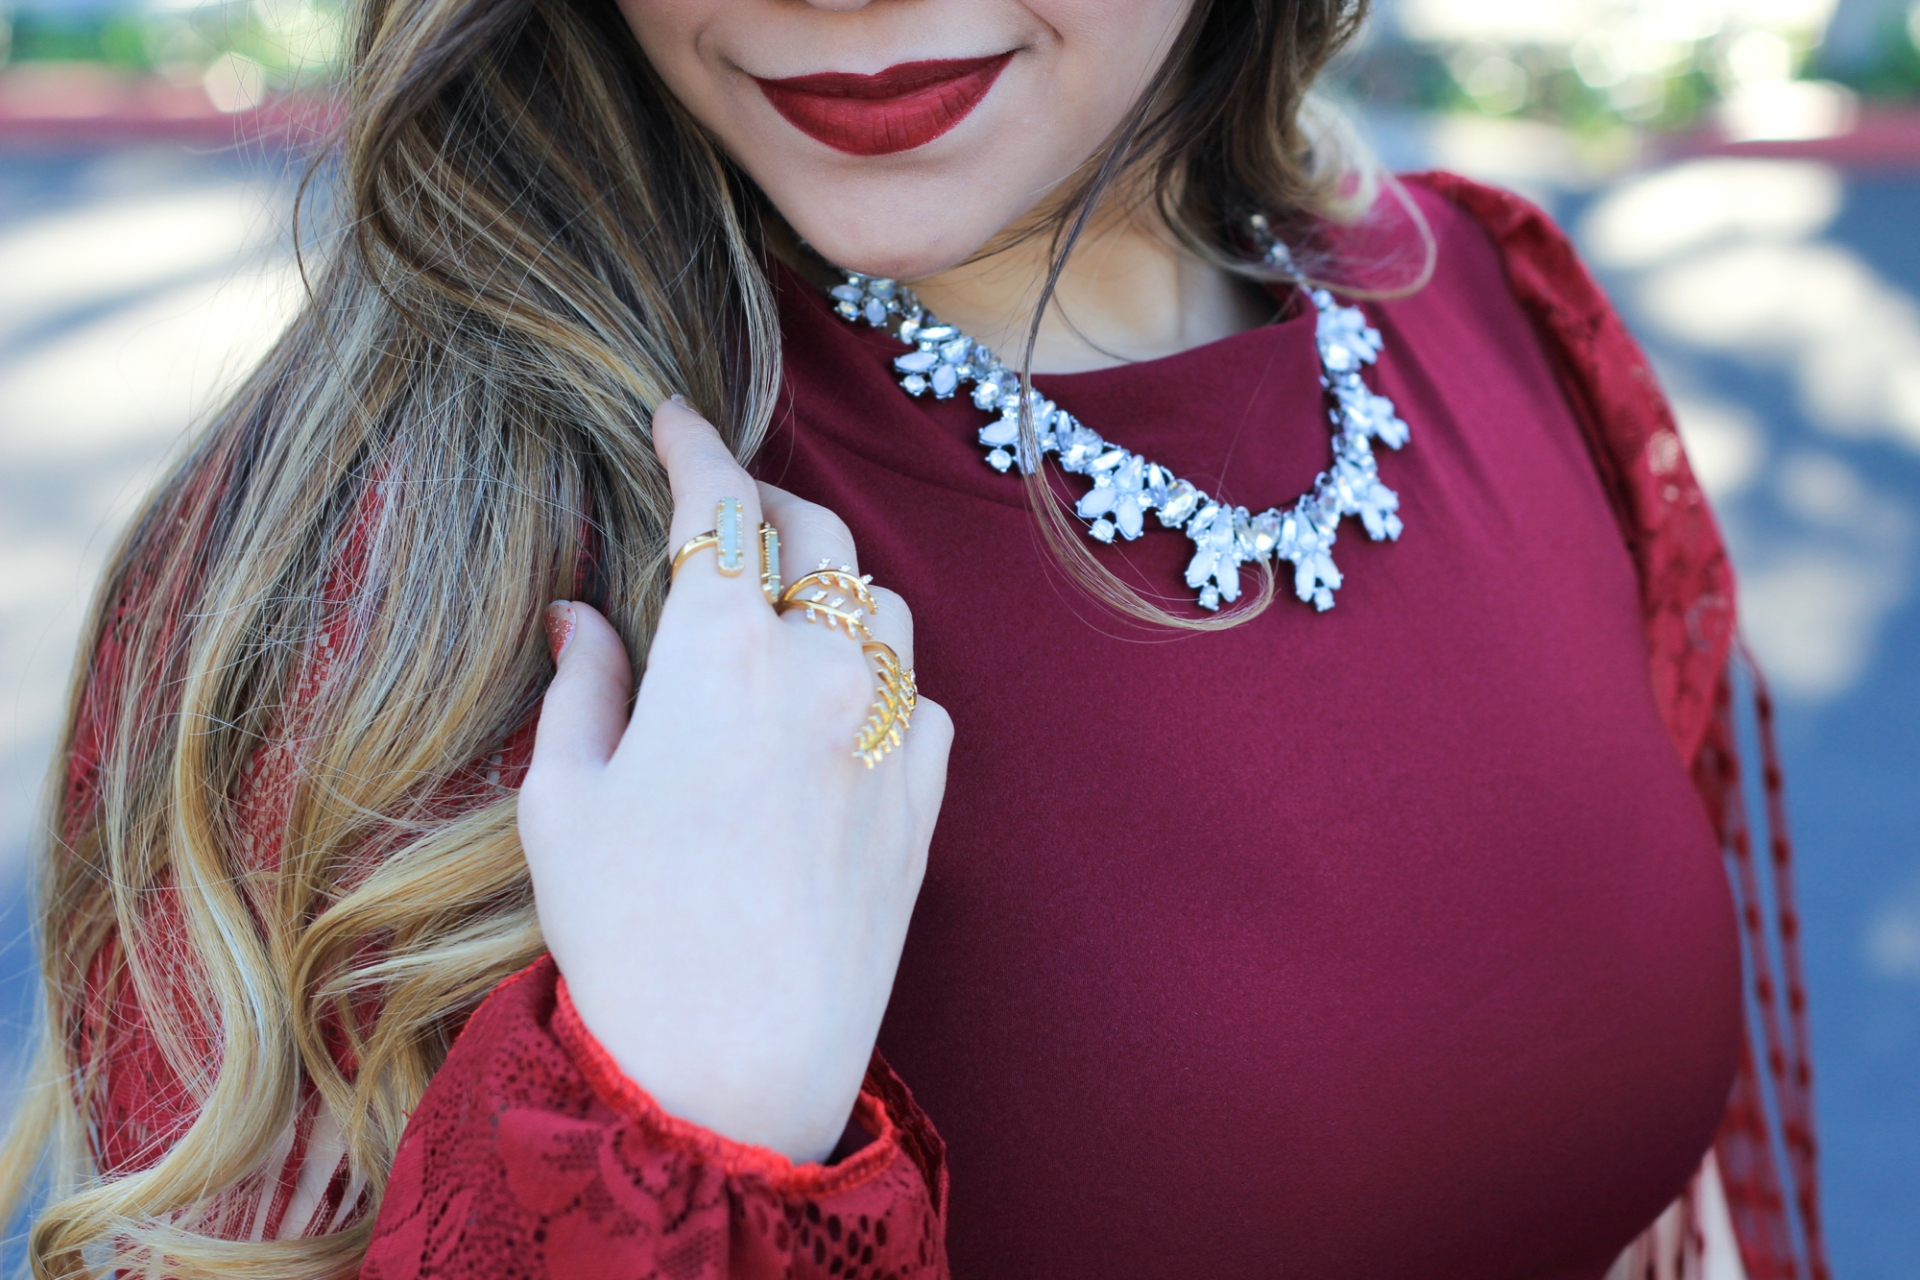 colourpop bichette baublebar necklace